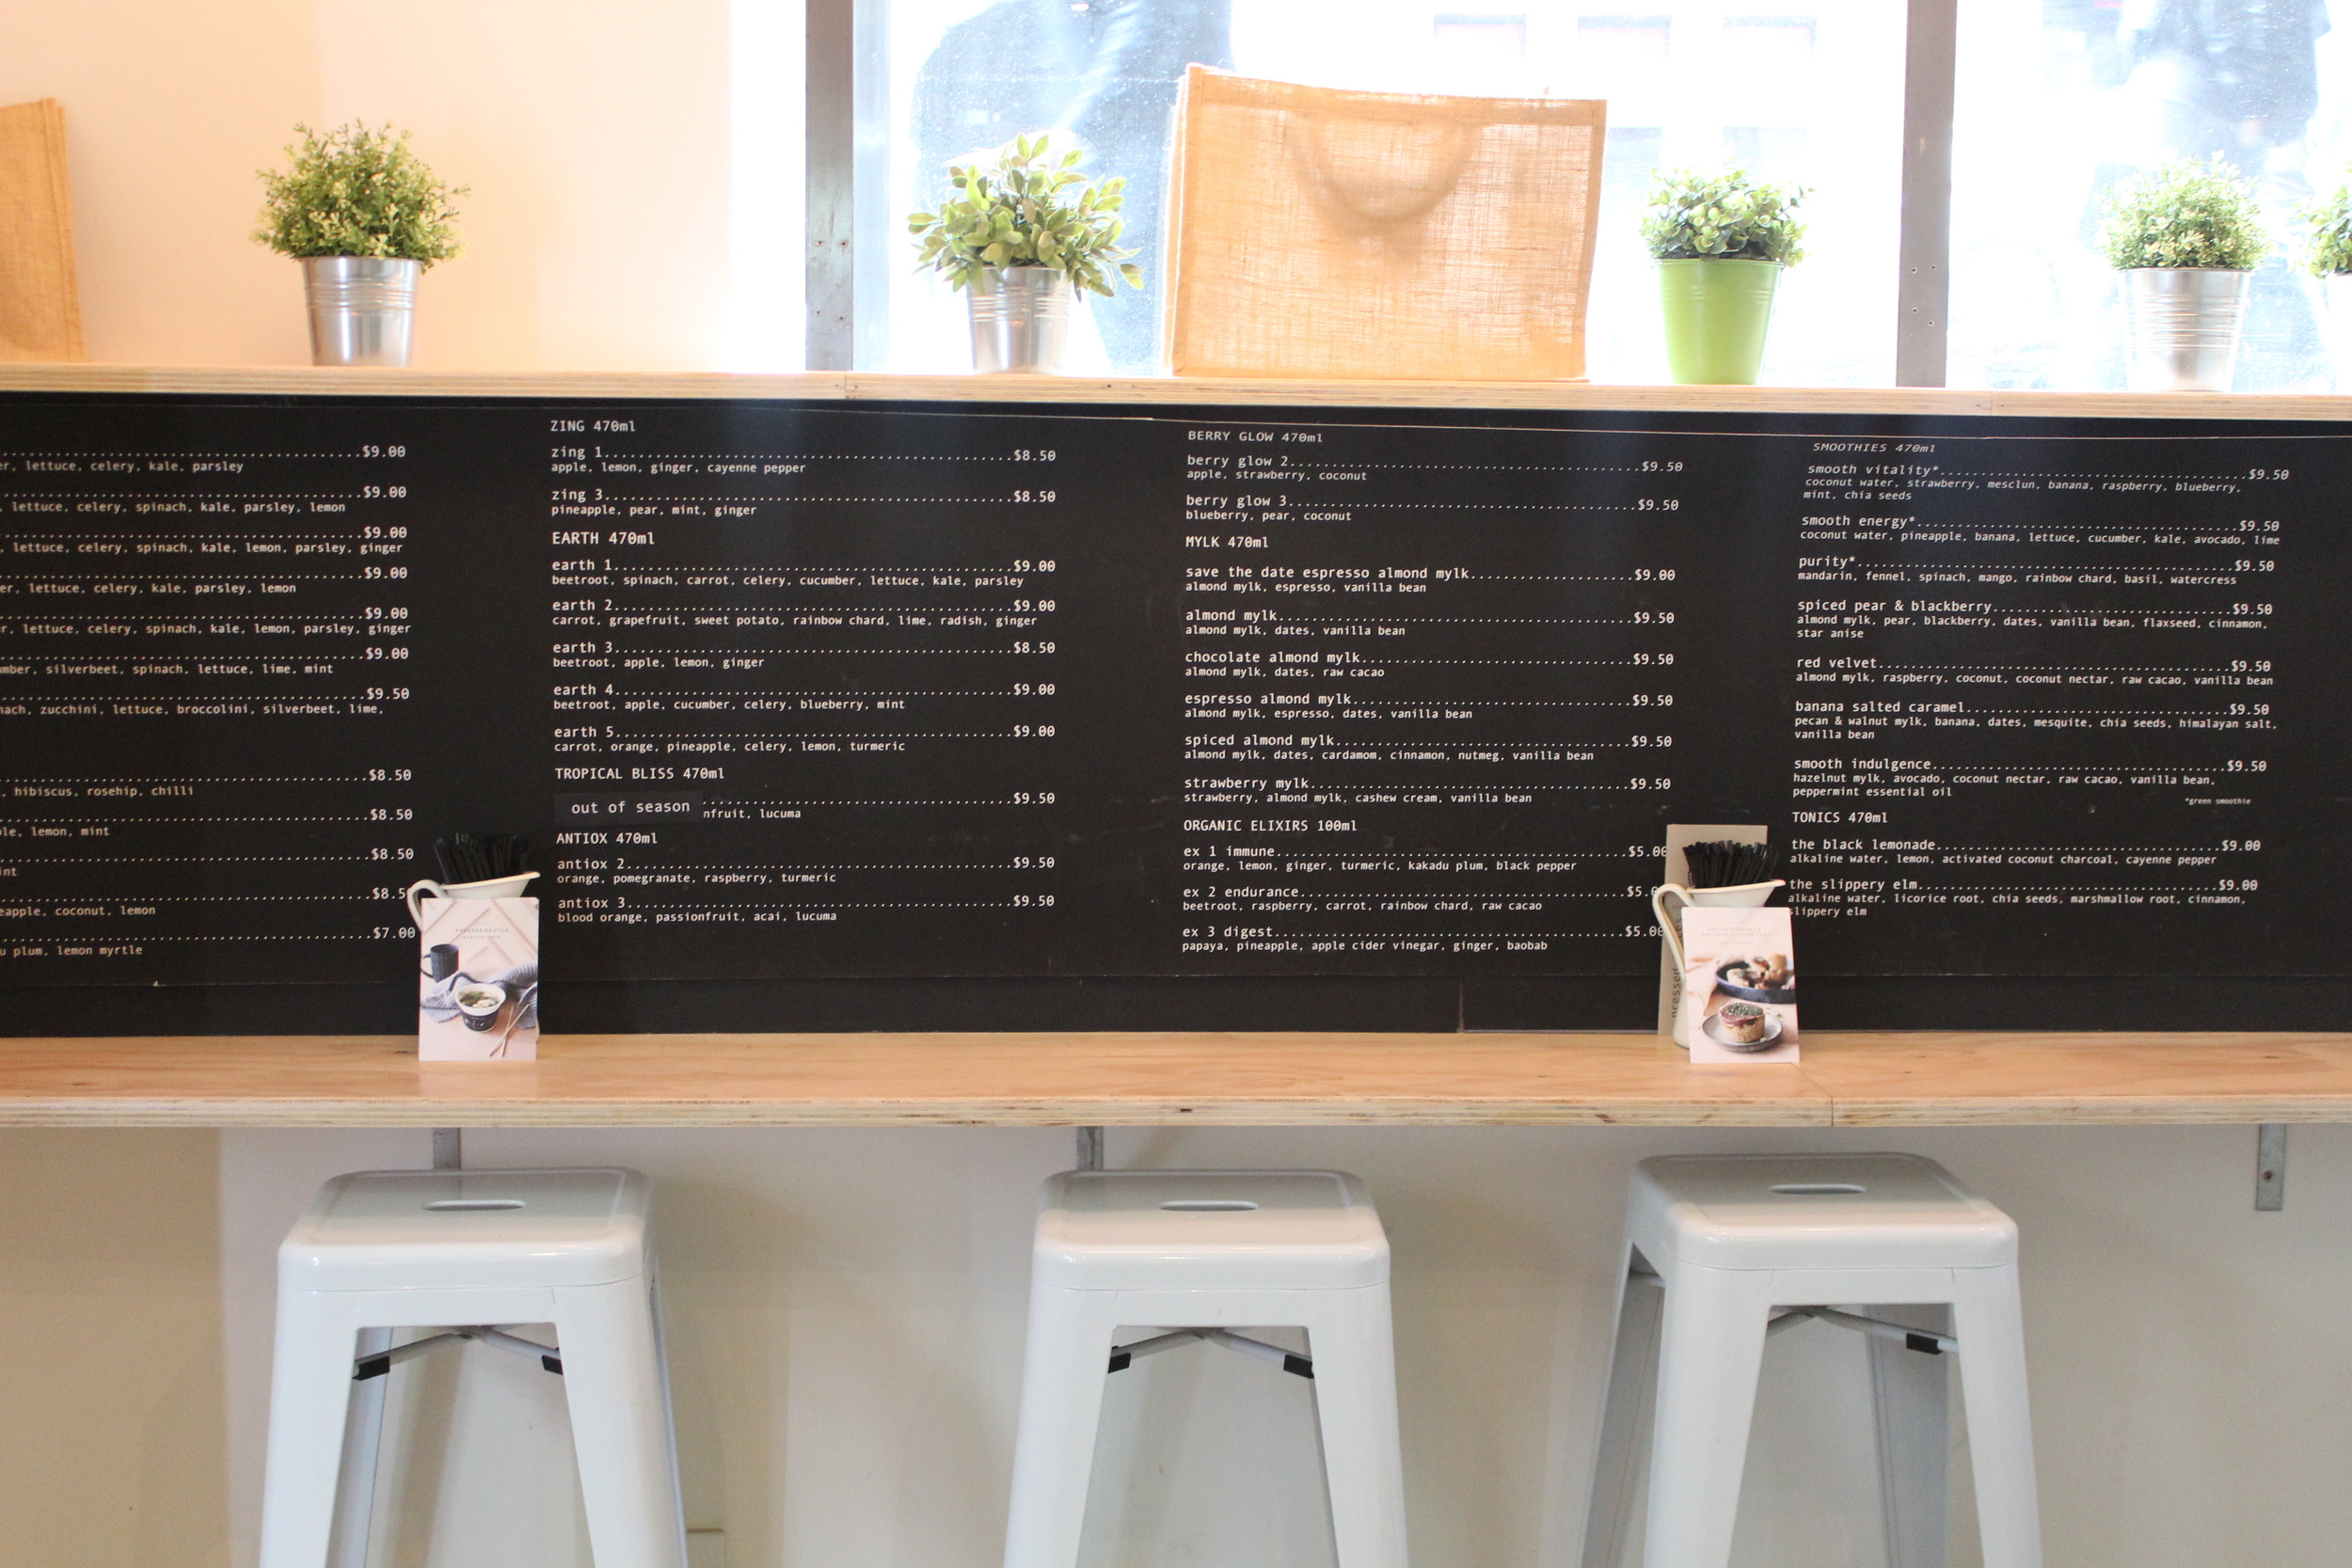 Pressed Juices Review Sydney Healthy